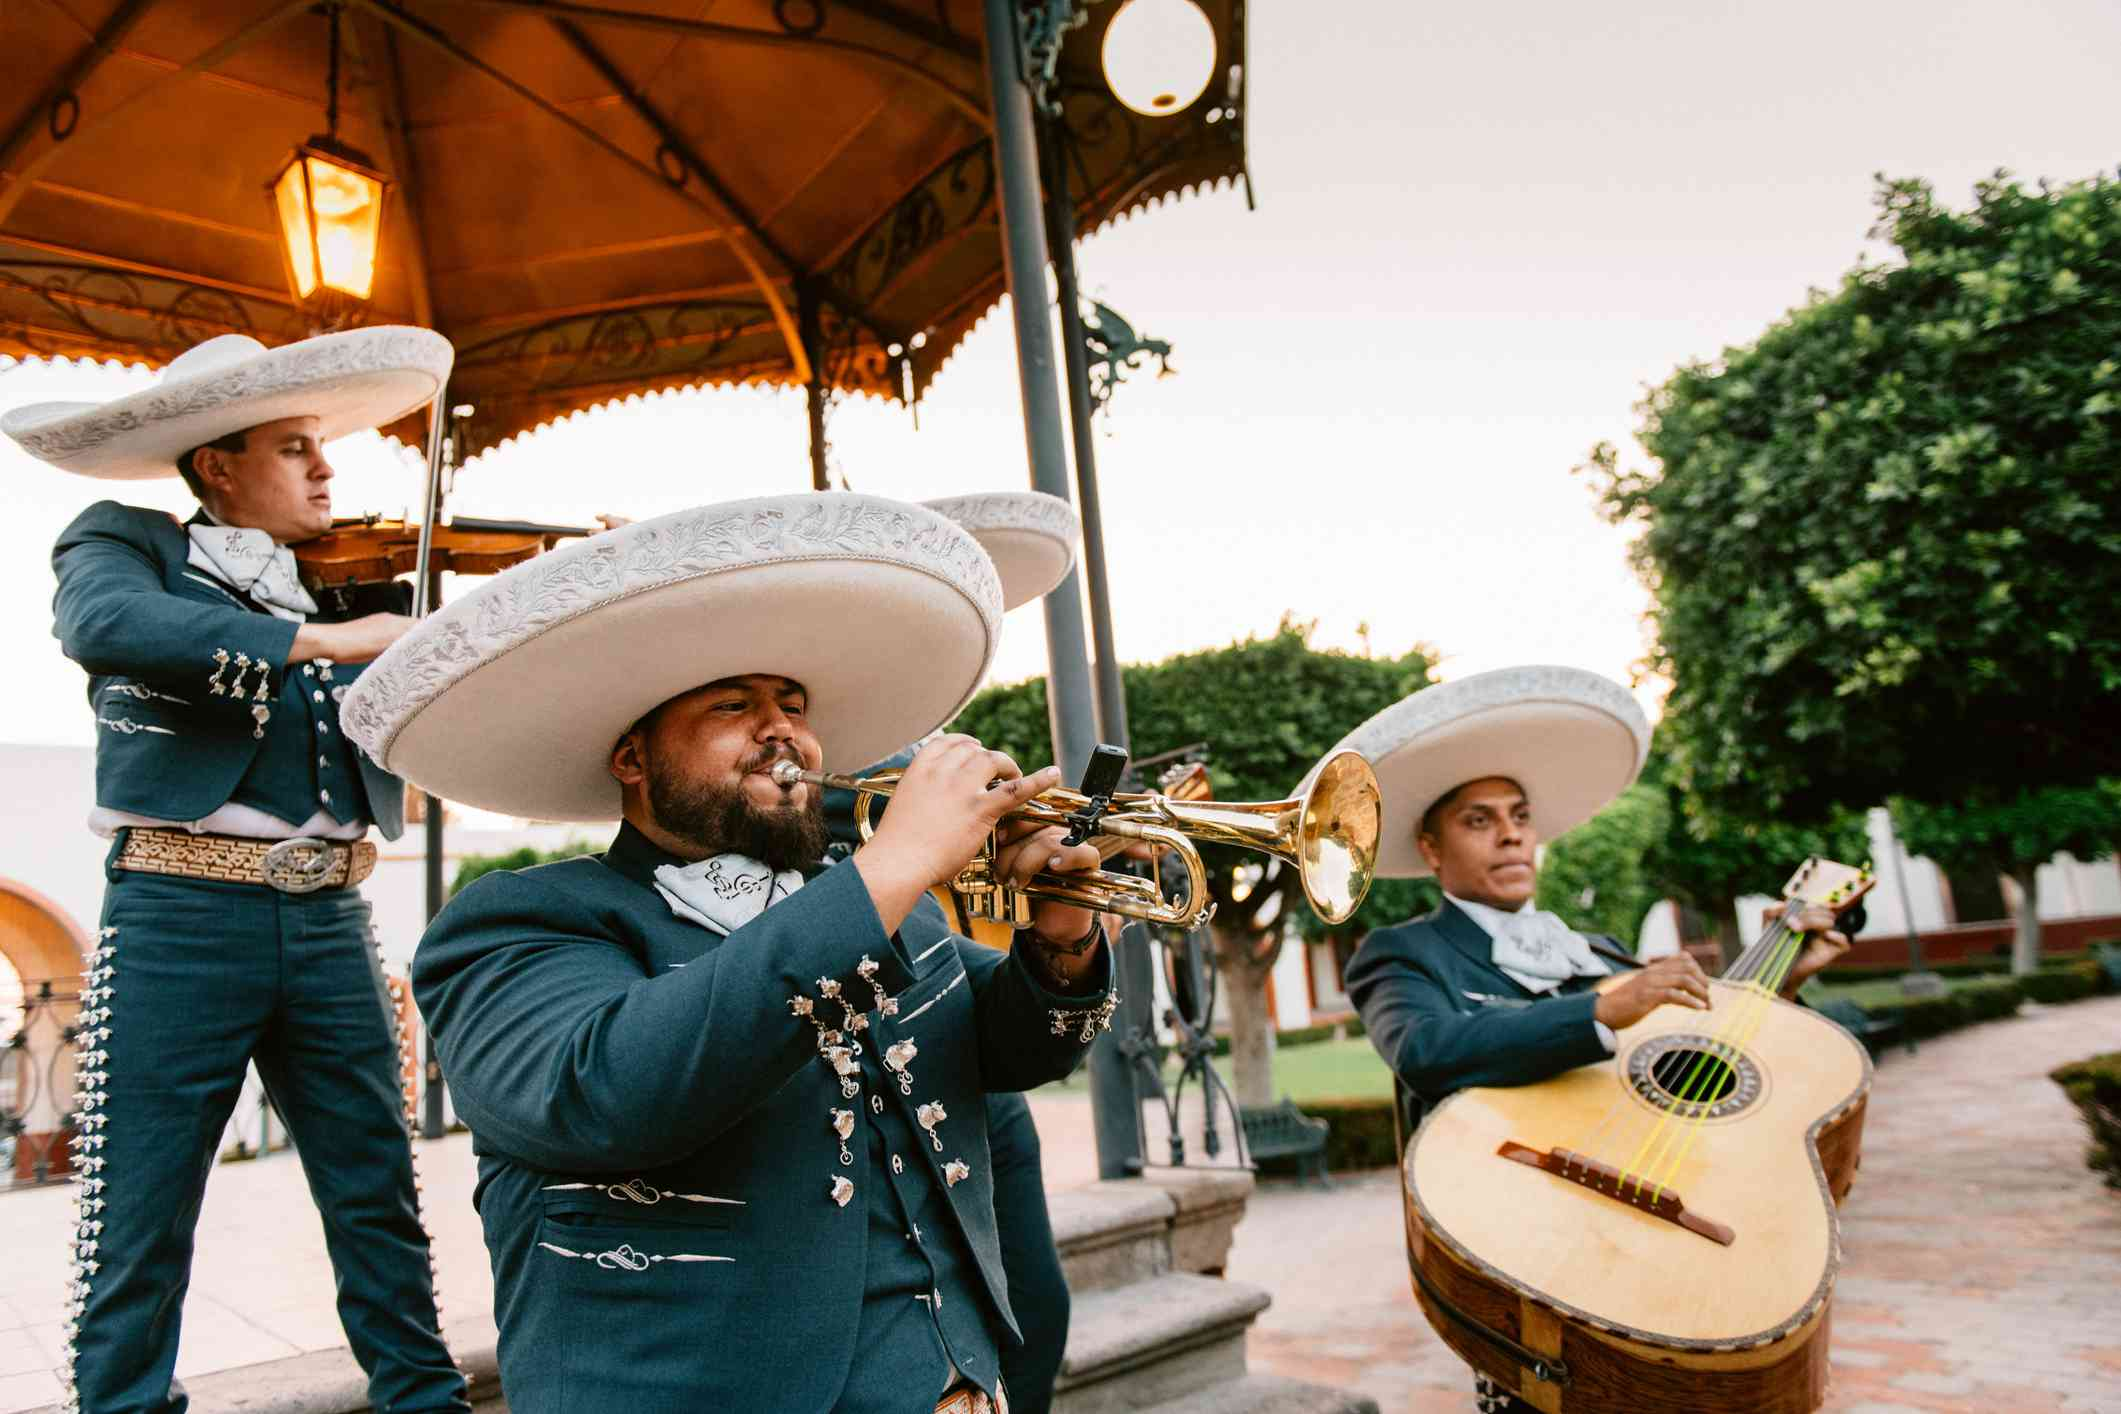 Mariachi Band Playing under Mexican Kiosk